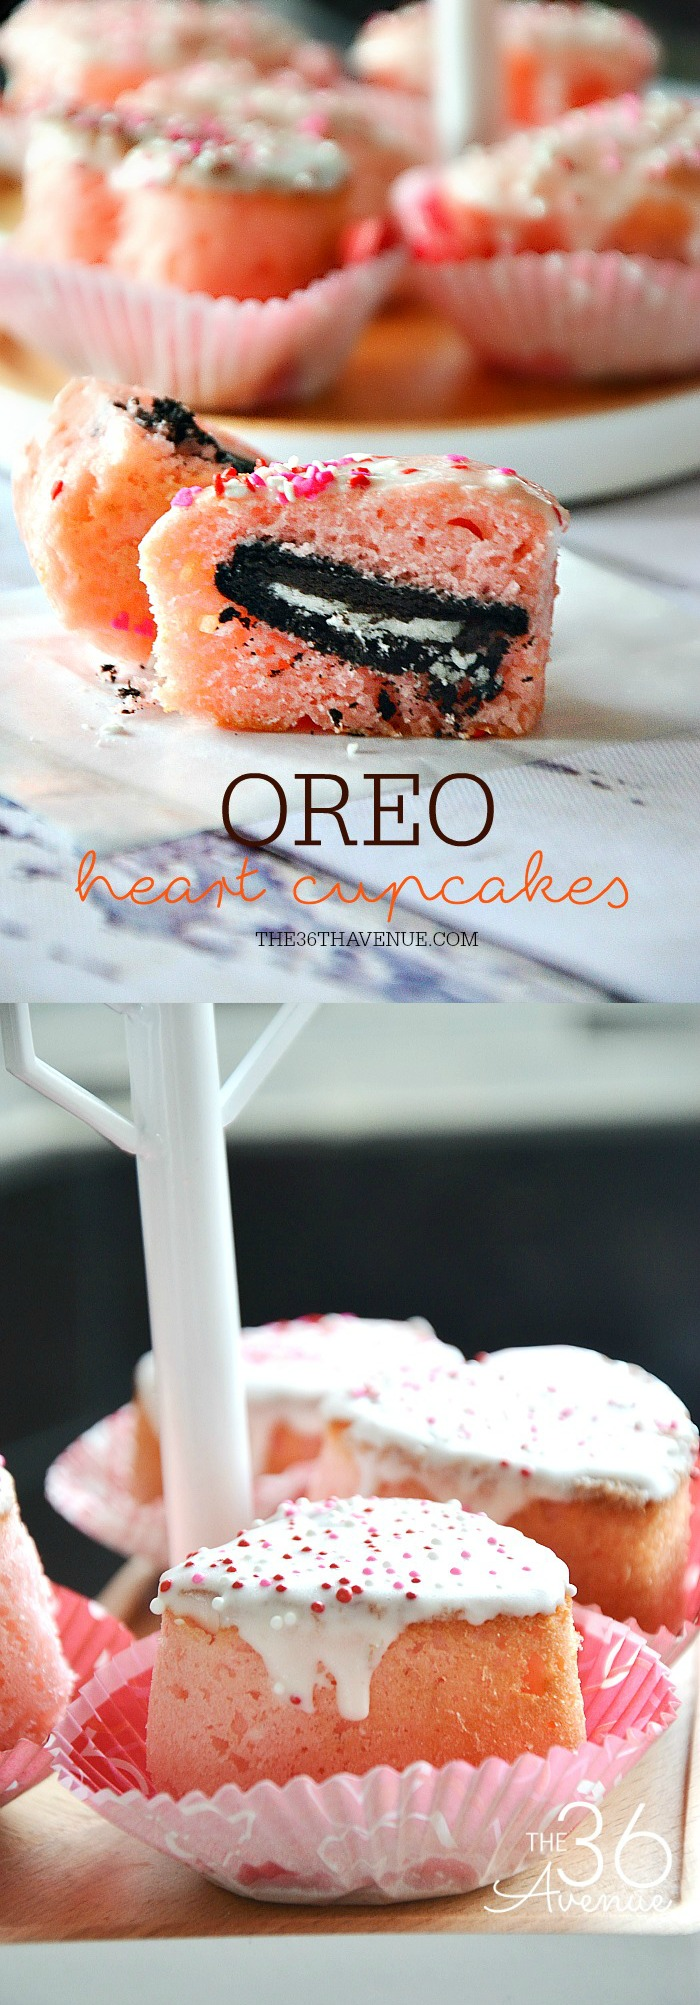 Oreo Cupcakes  -  Cupcakes filled with yummy Oreos... Perfect with a cold cup of milk. Yummy!